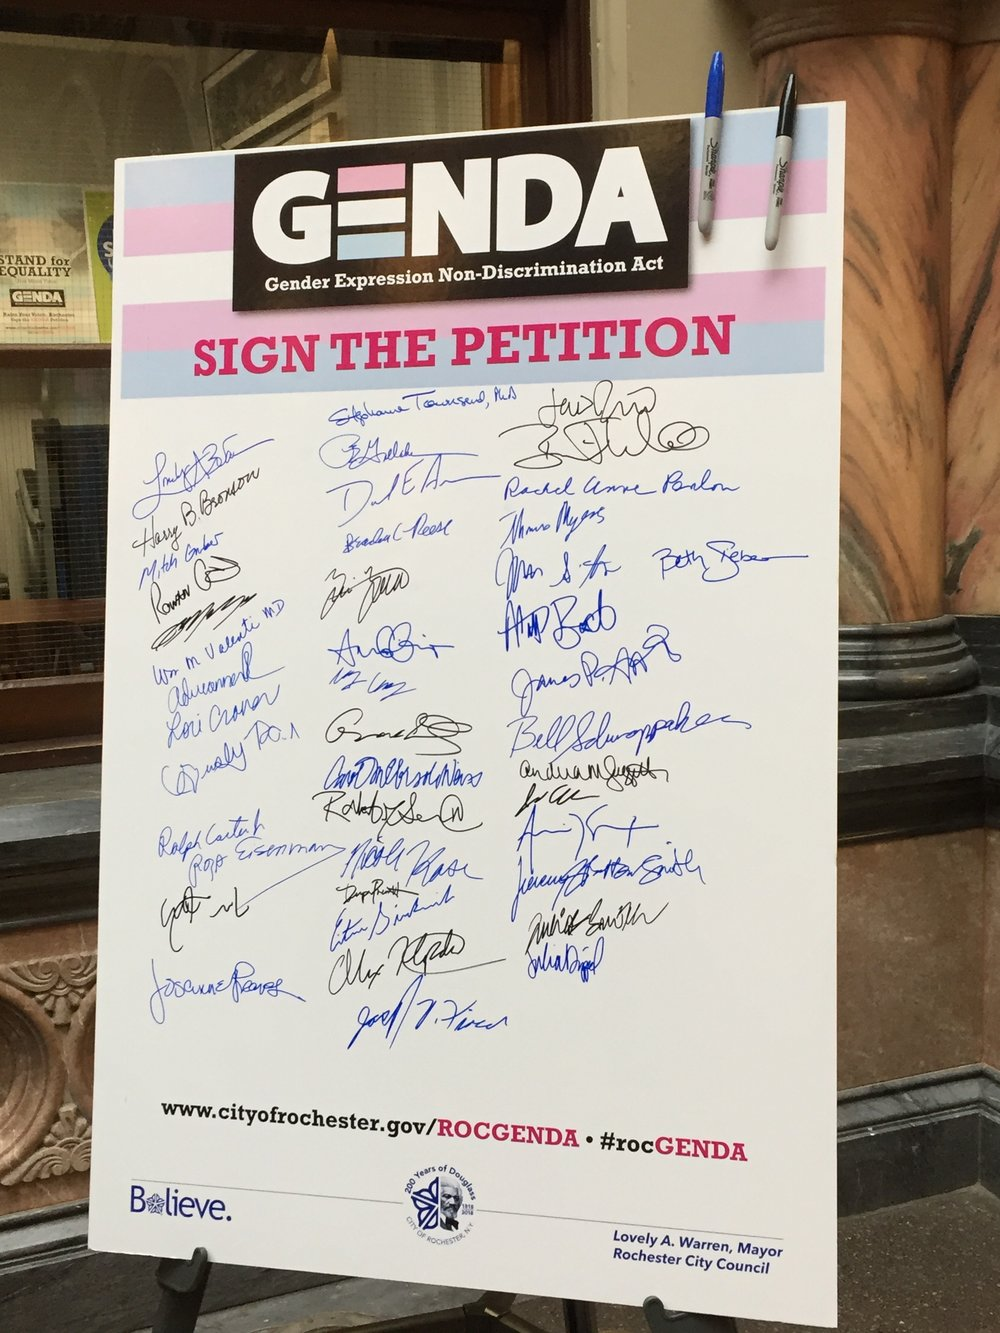 2018 10-22 GENDA Rally Petition.jpeg